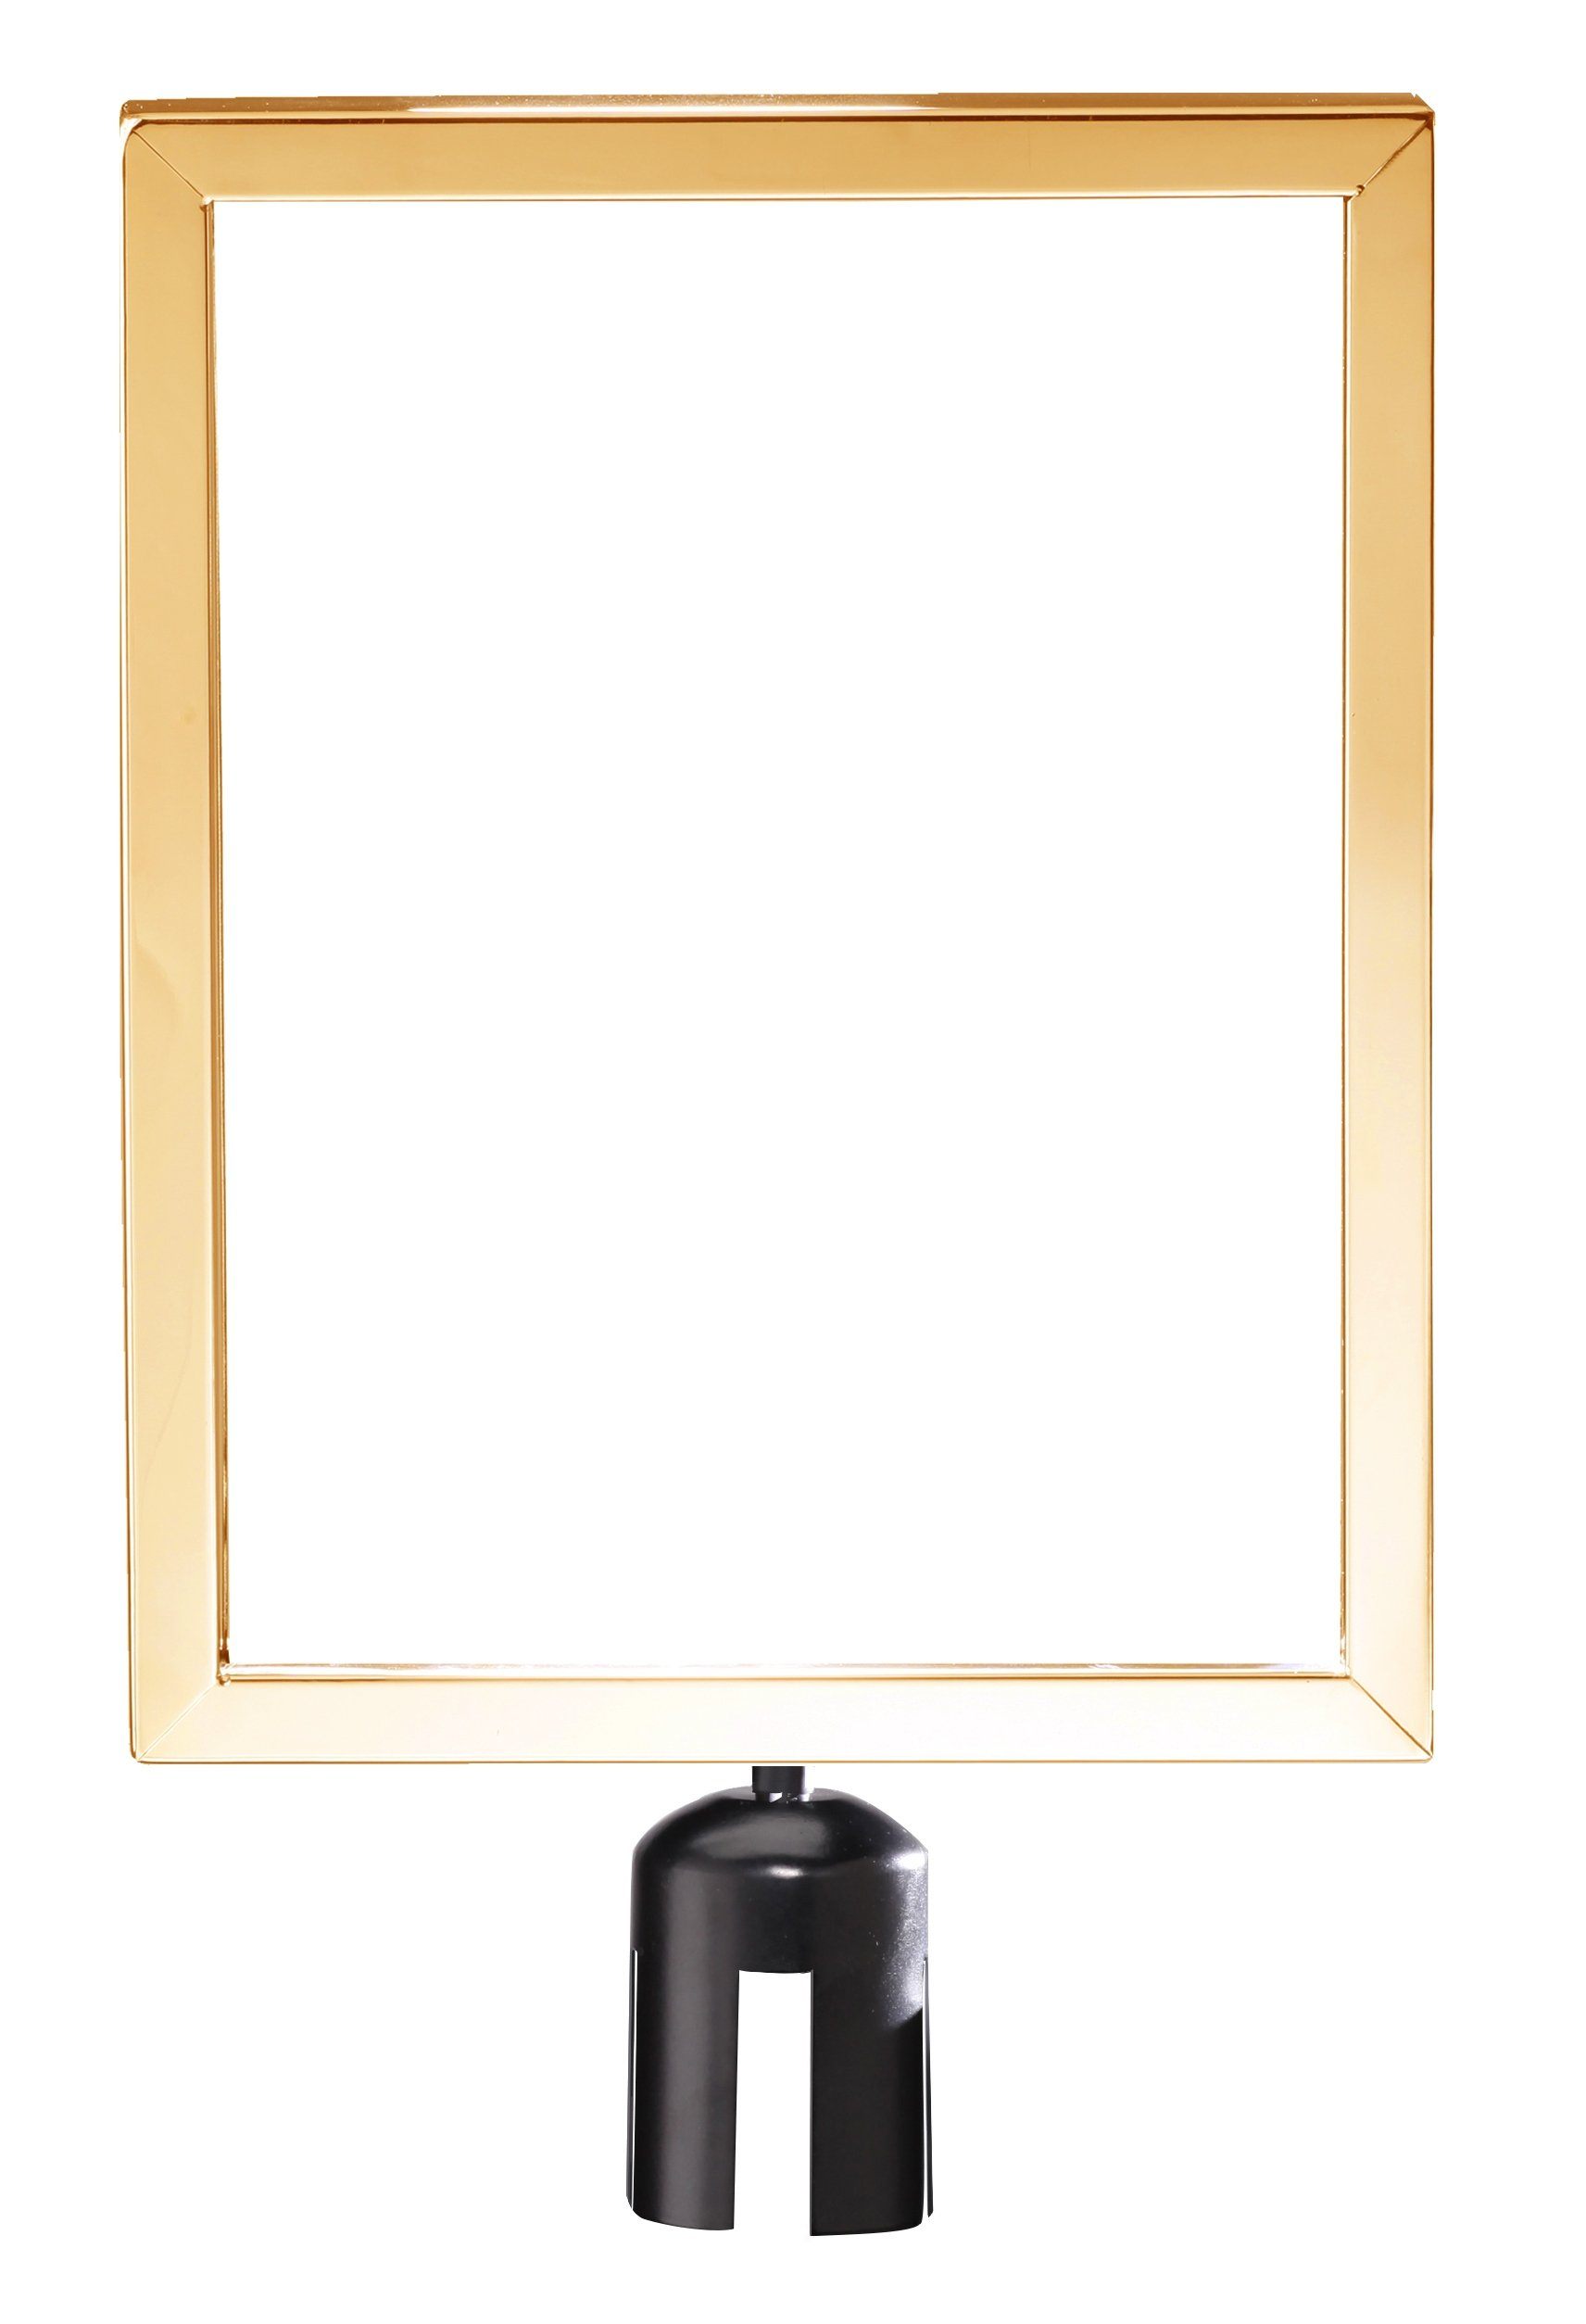 ComeAlong Industries Heavy Duty Polished Brass Vertical Sign Frame with Black Post Belt Top Adapter, 8.5'' Width x 11'' Height by ComeAlong Industries